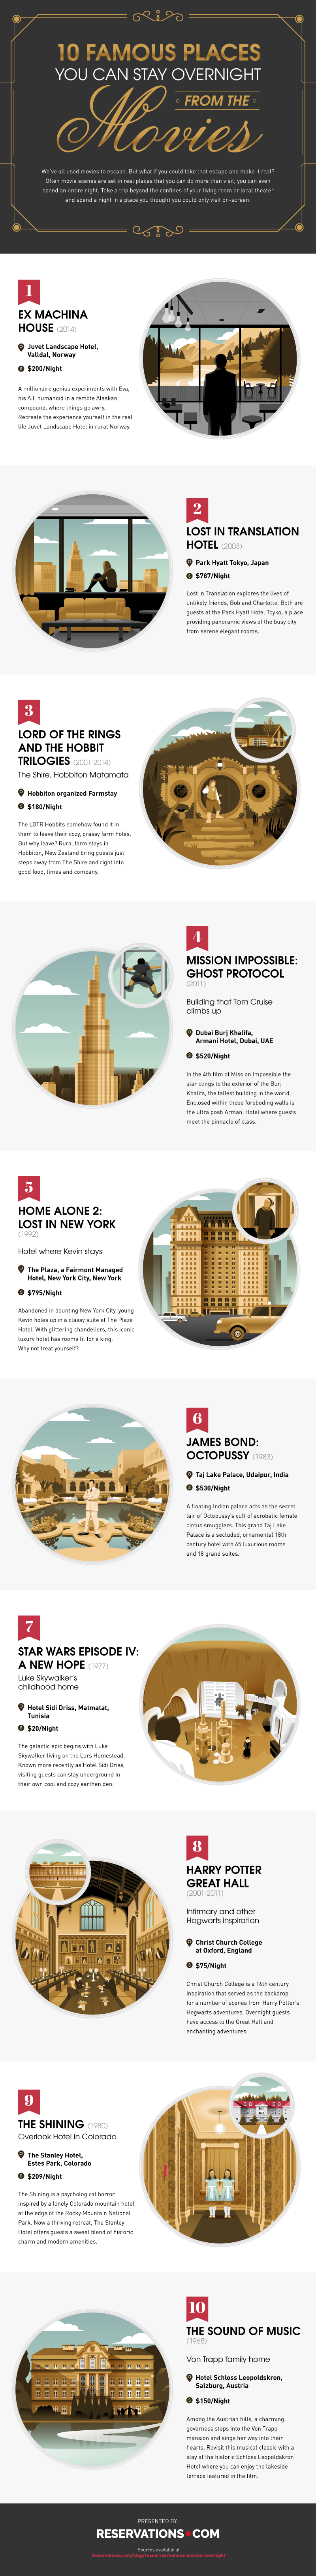 10 Popular Locations From the Movies You Should Linger #infographic